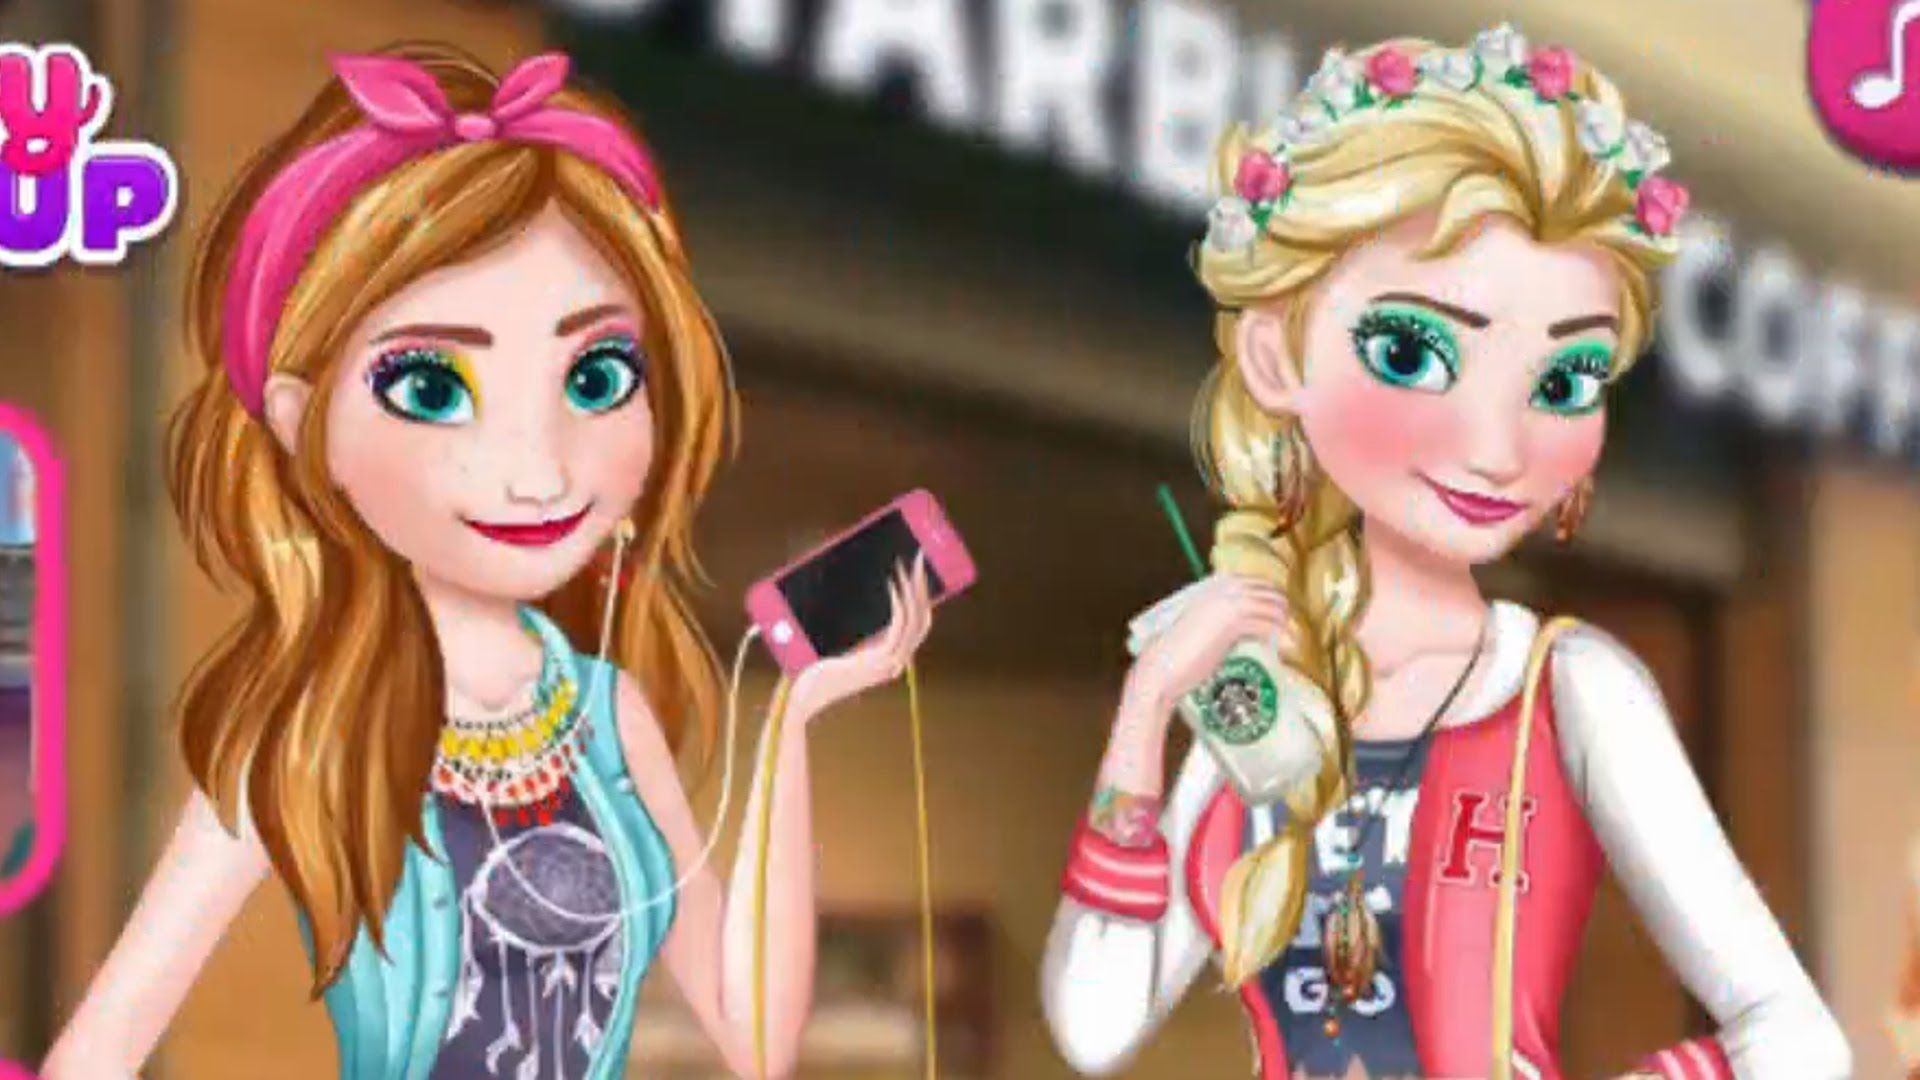 Frozen Elsa and Anna Modern Sisters Makeup Game - Frozen ...